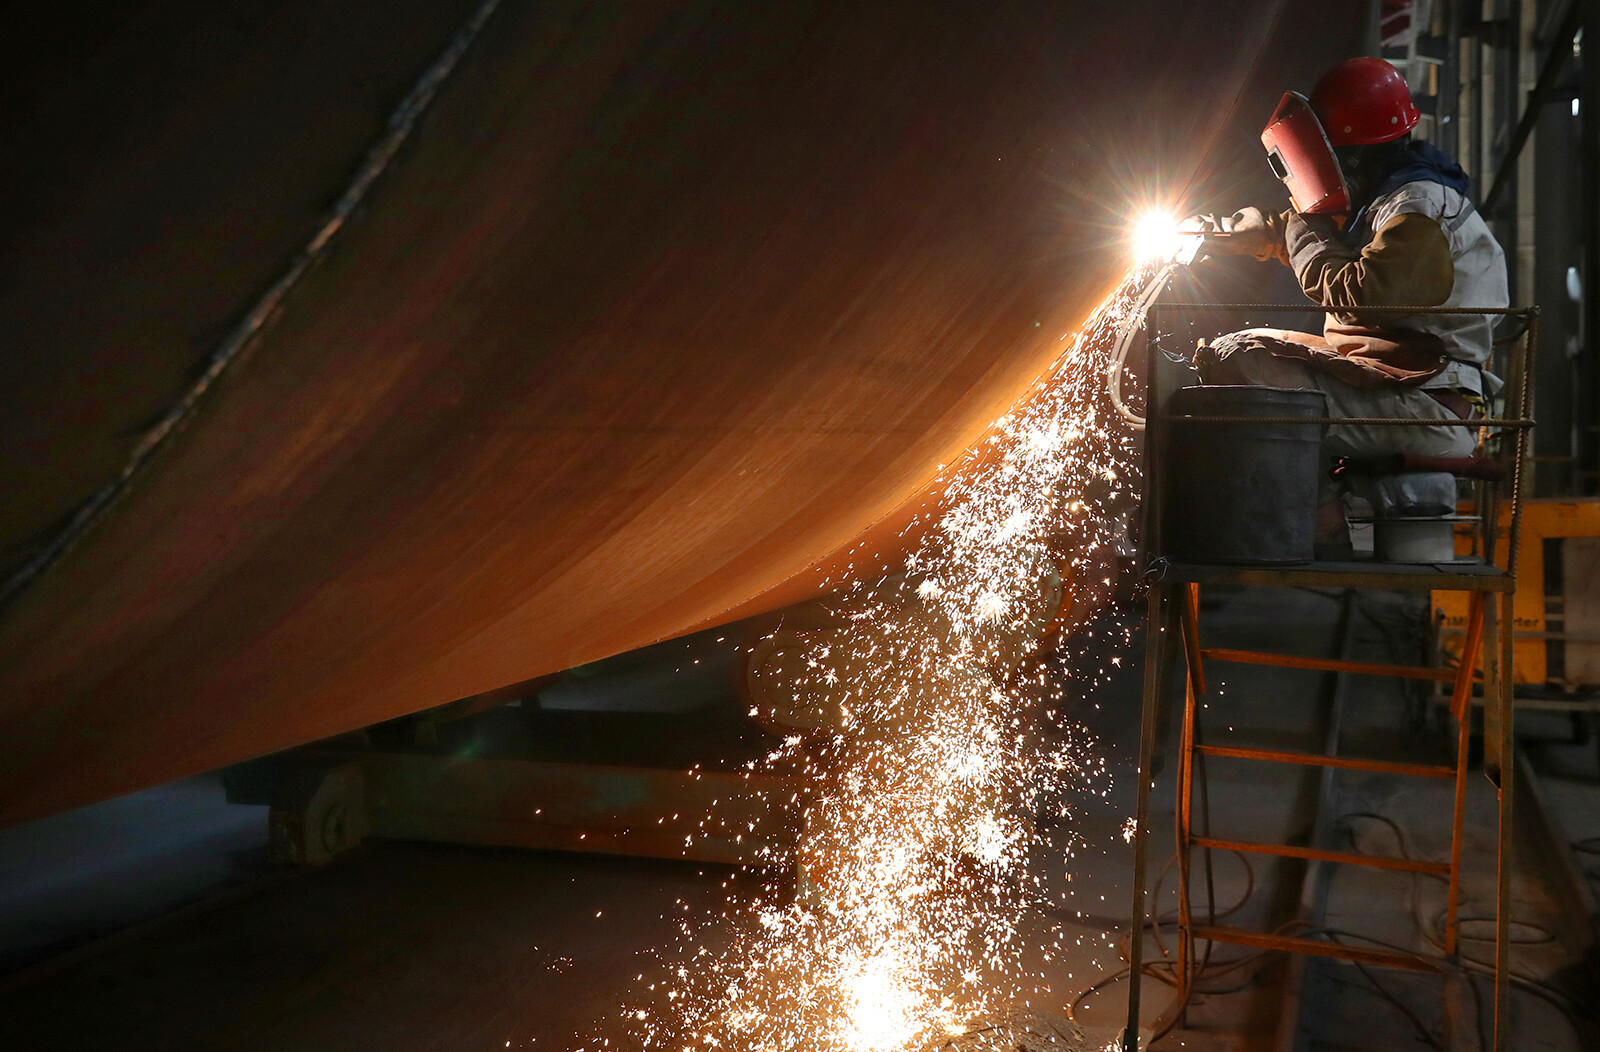 <i>Xu Congjun/FeatureChina/Getty Images</i><br/>A welder works at a factory of wind farm facilities in Rudong county in east China's Jiangsu province on June 7. China is releasing its latest quarterly economic growth figures on July 15